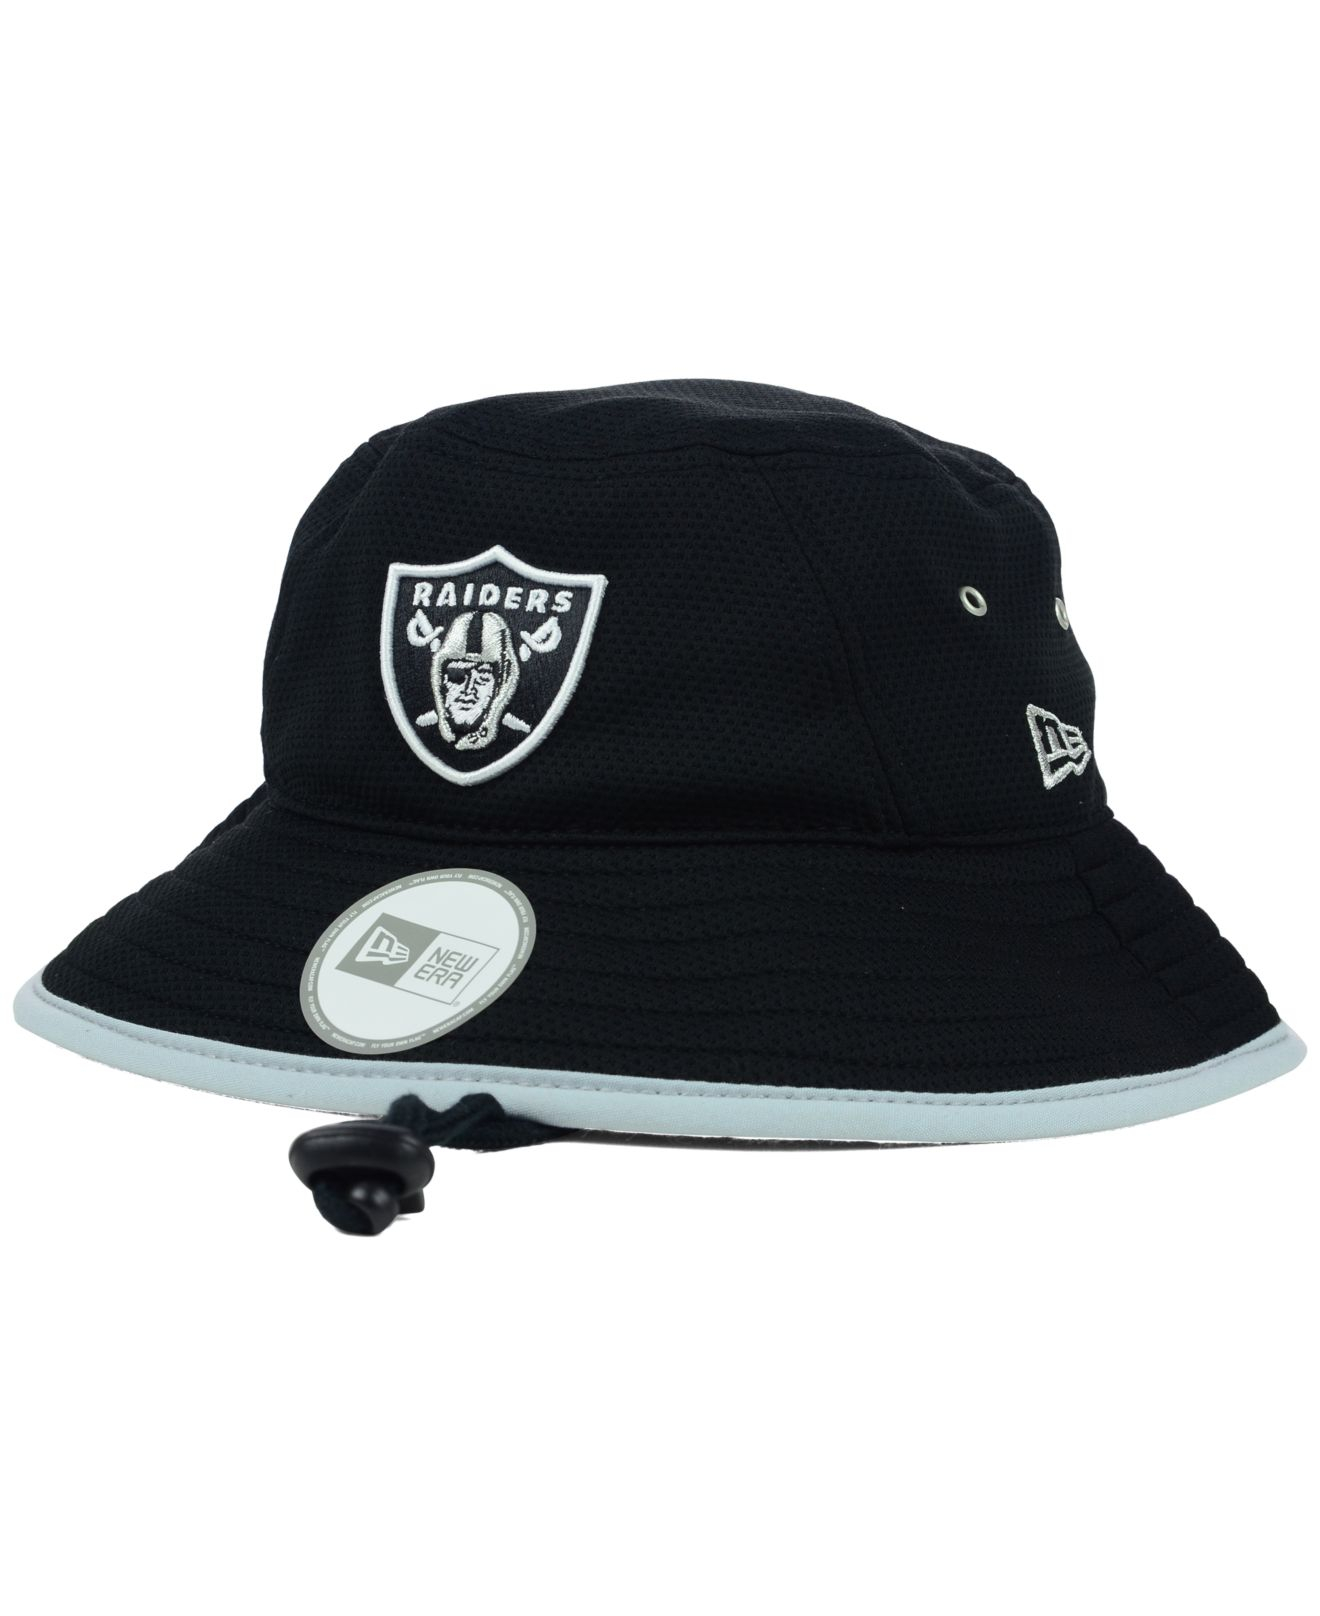 876fe66ce1cbe KTZ Oakland Raiders Tc Training Bucket Hat in Black for Men - Lyst